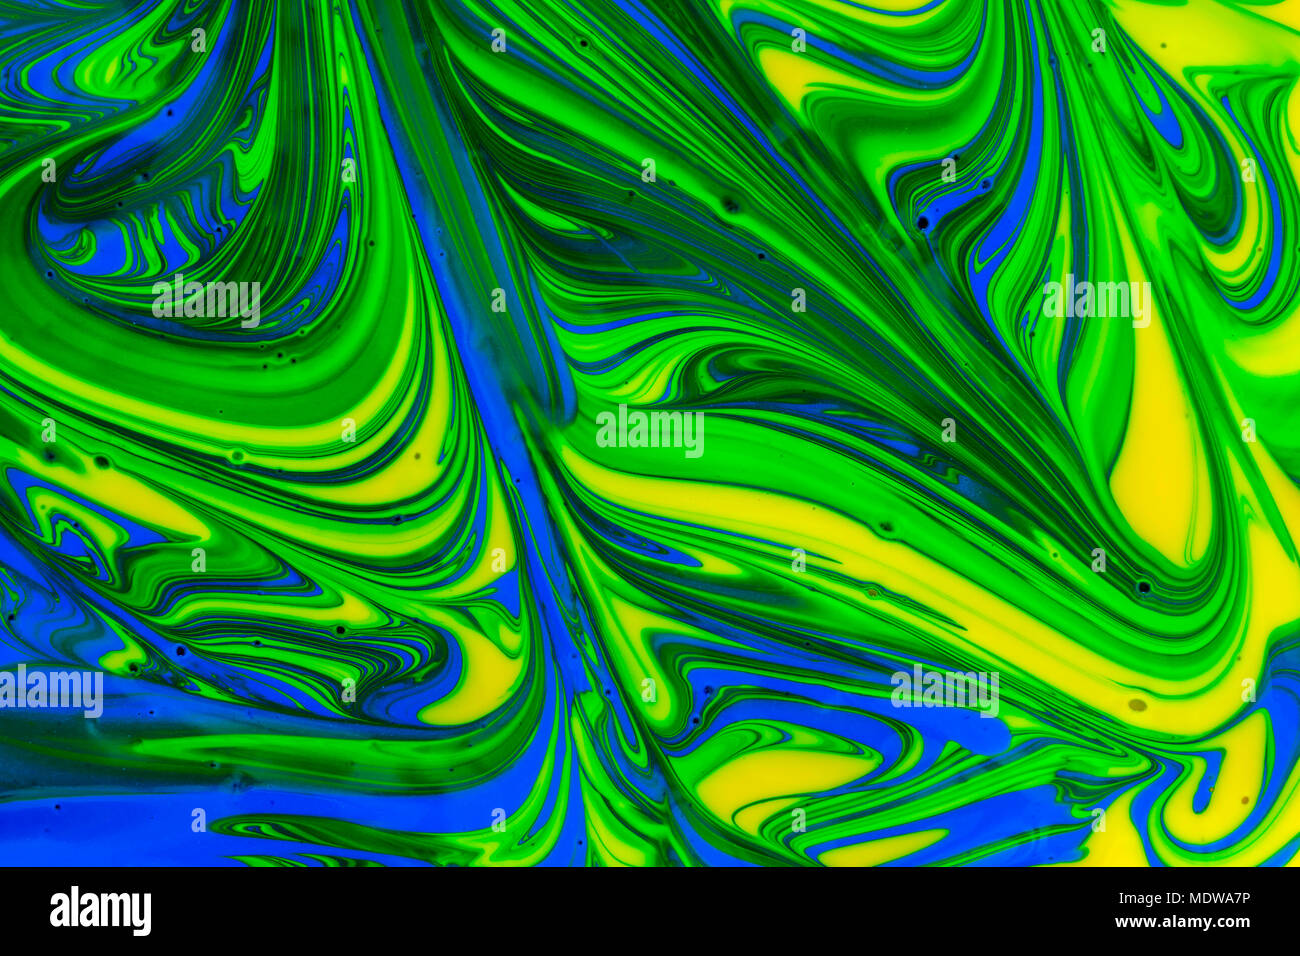 Abstract Background Design In Red Blue Green And Yellow